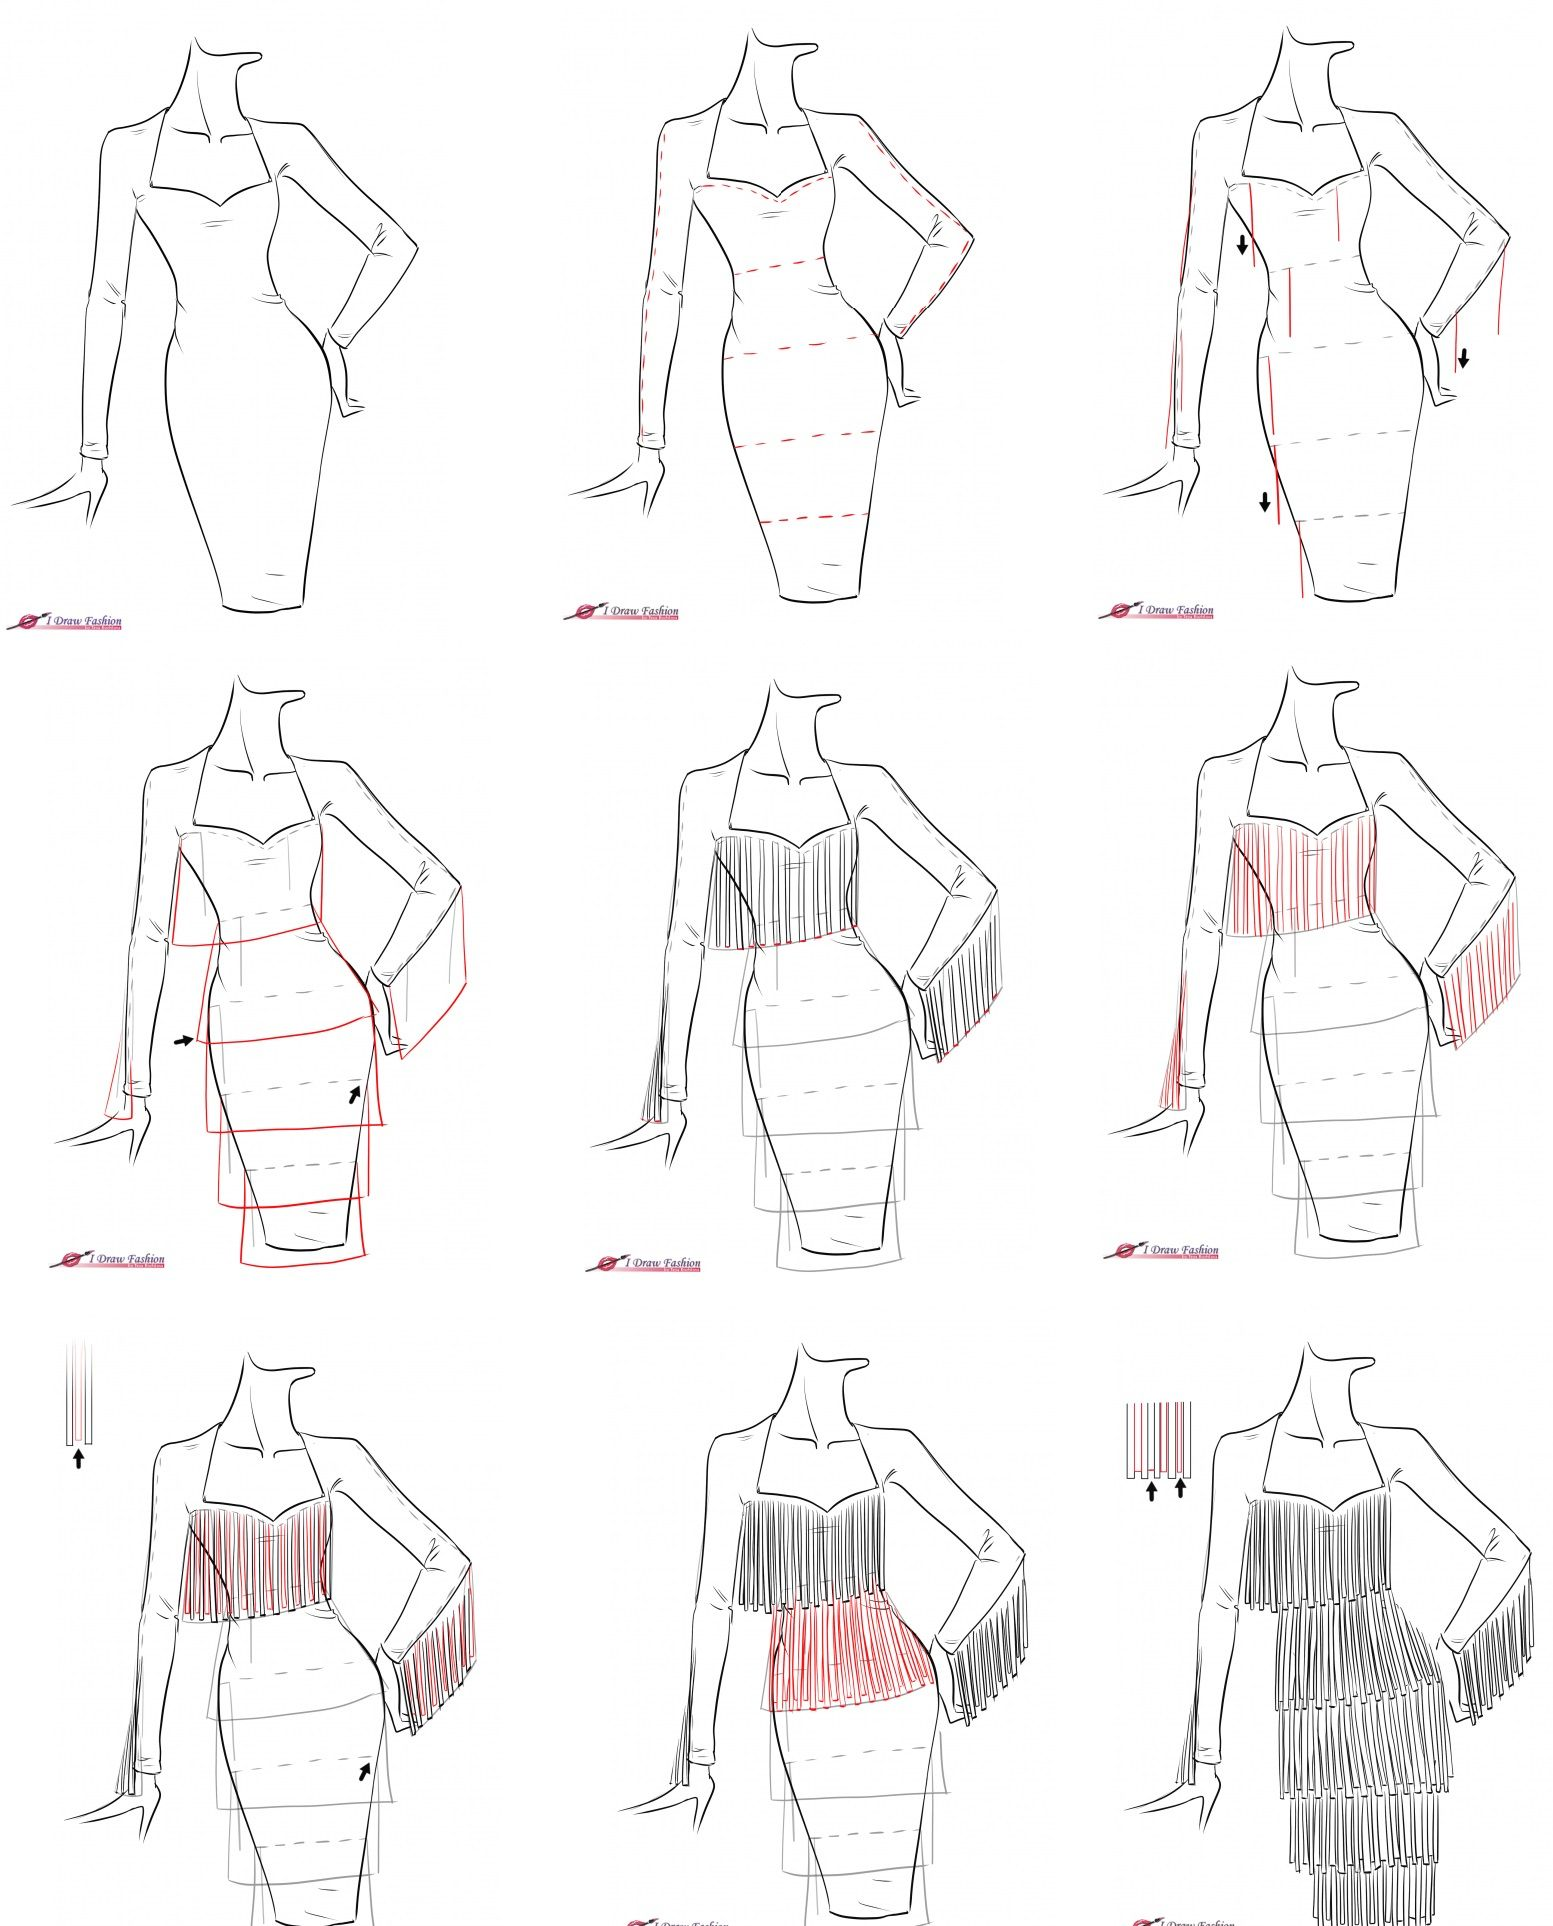 A Step By Step Tutorial On How To Draw Fringe Dress Fashion Drawing Tutorial Fashion Illustrations Techniques Dress Design Sketches